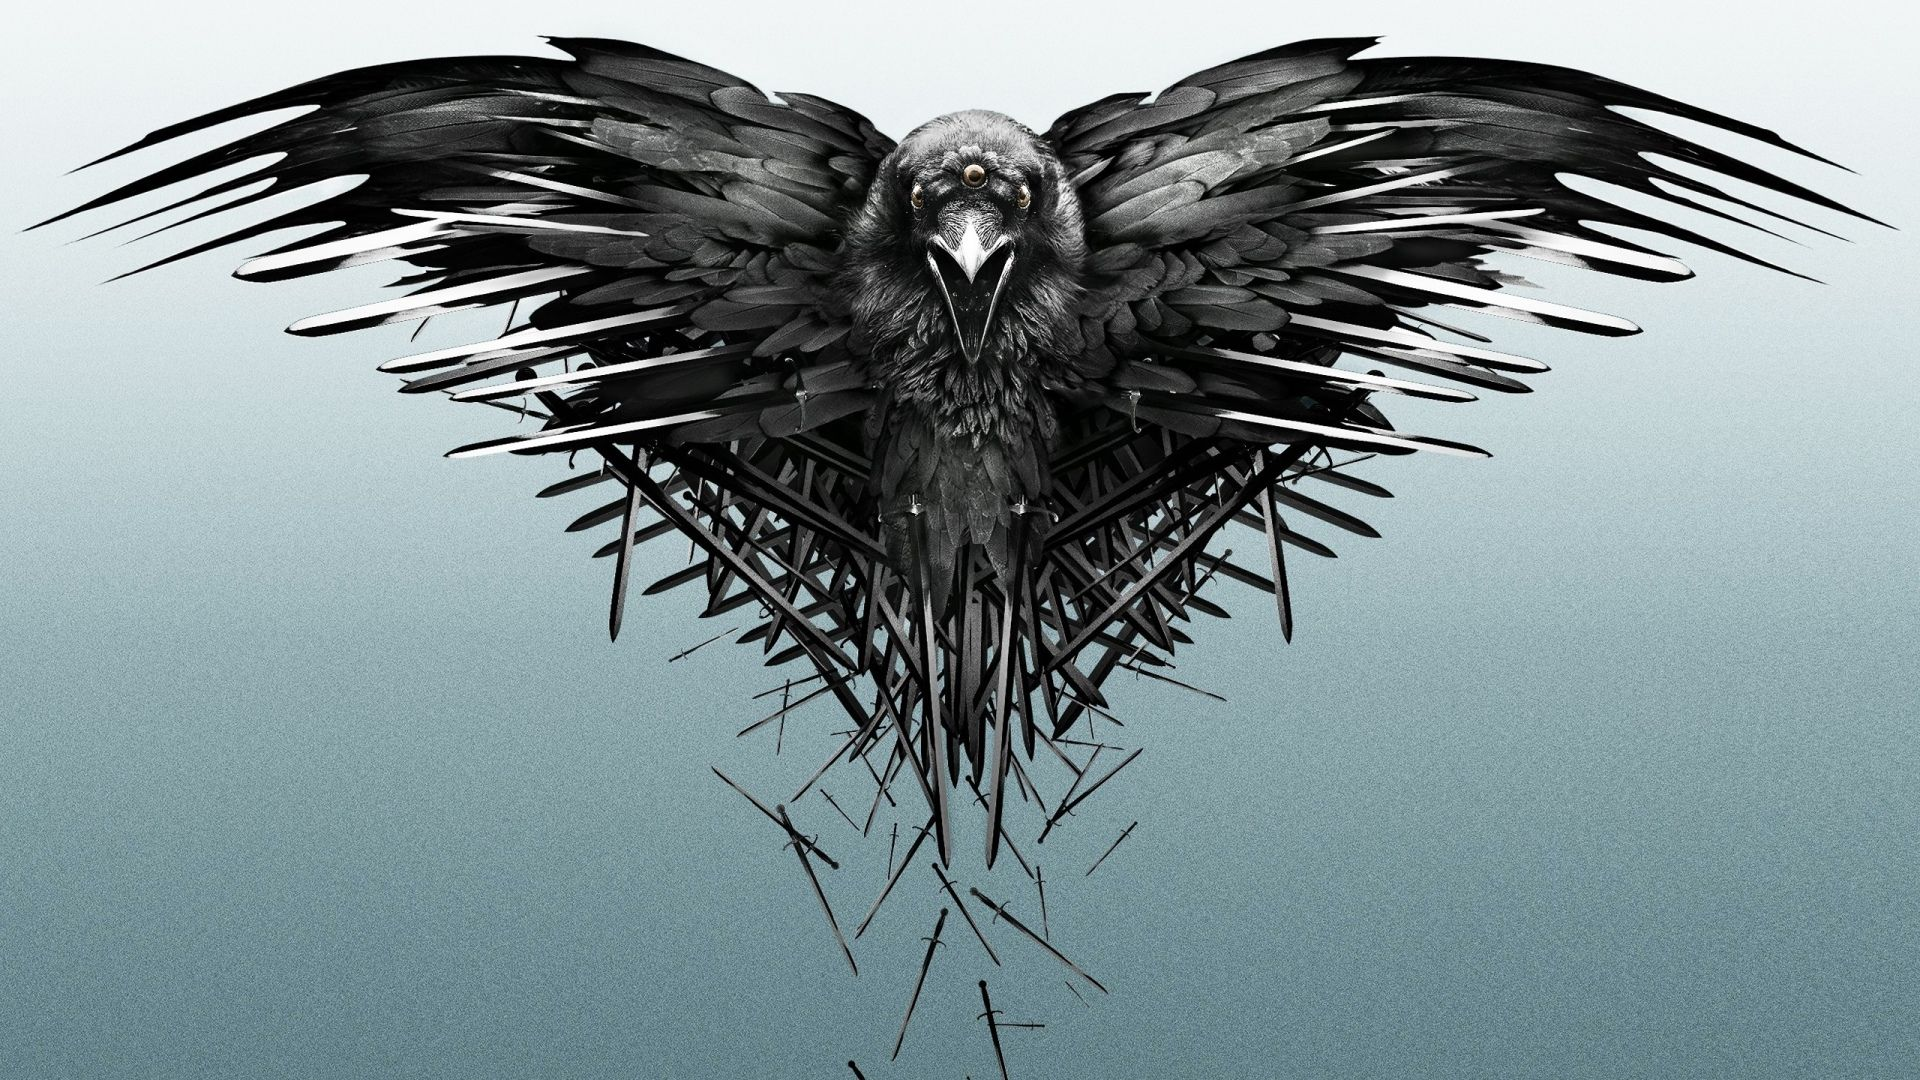 Corbeau Game of Thrones